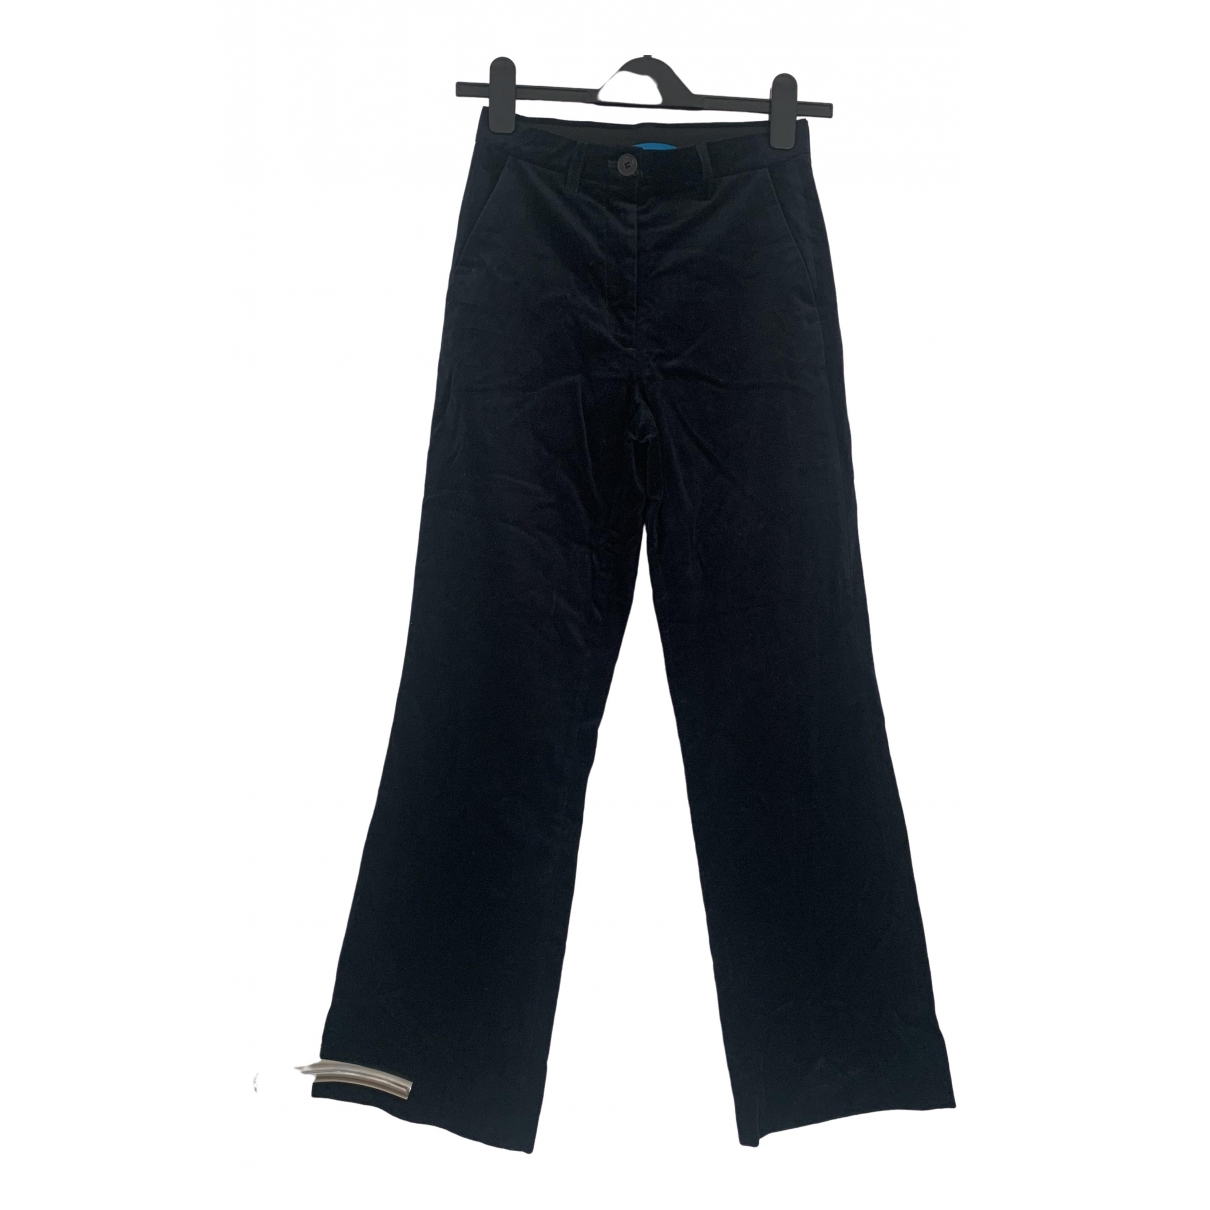 Mih Jeans \N Navy Velvet Trousers for Women XS International